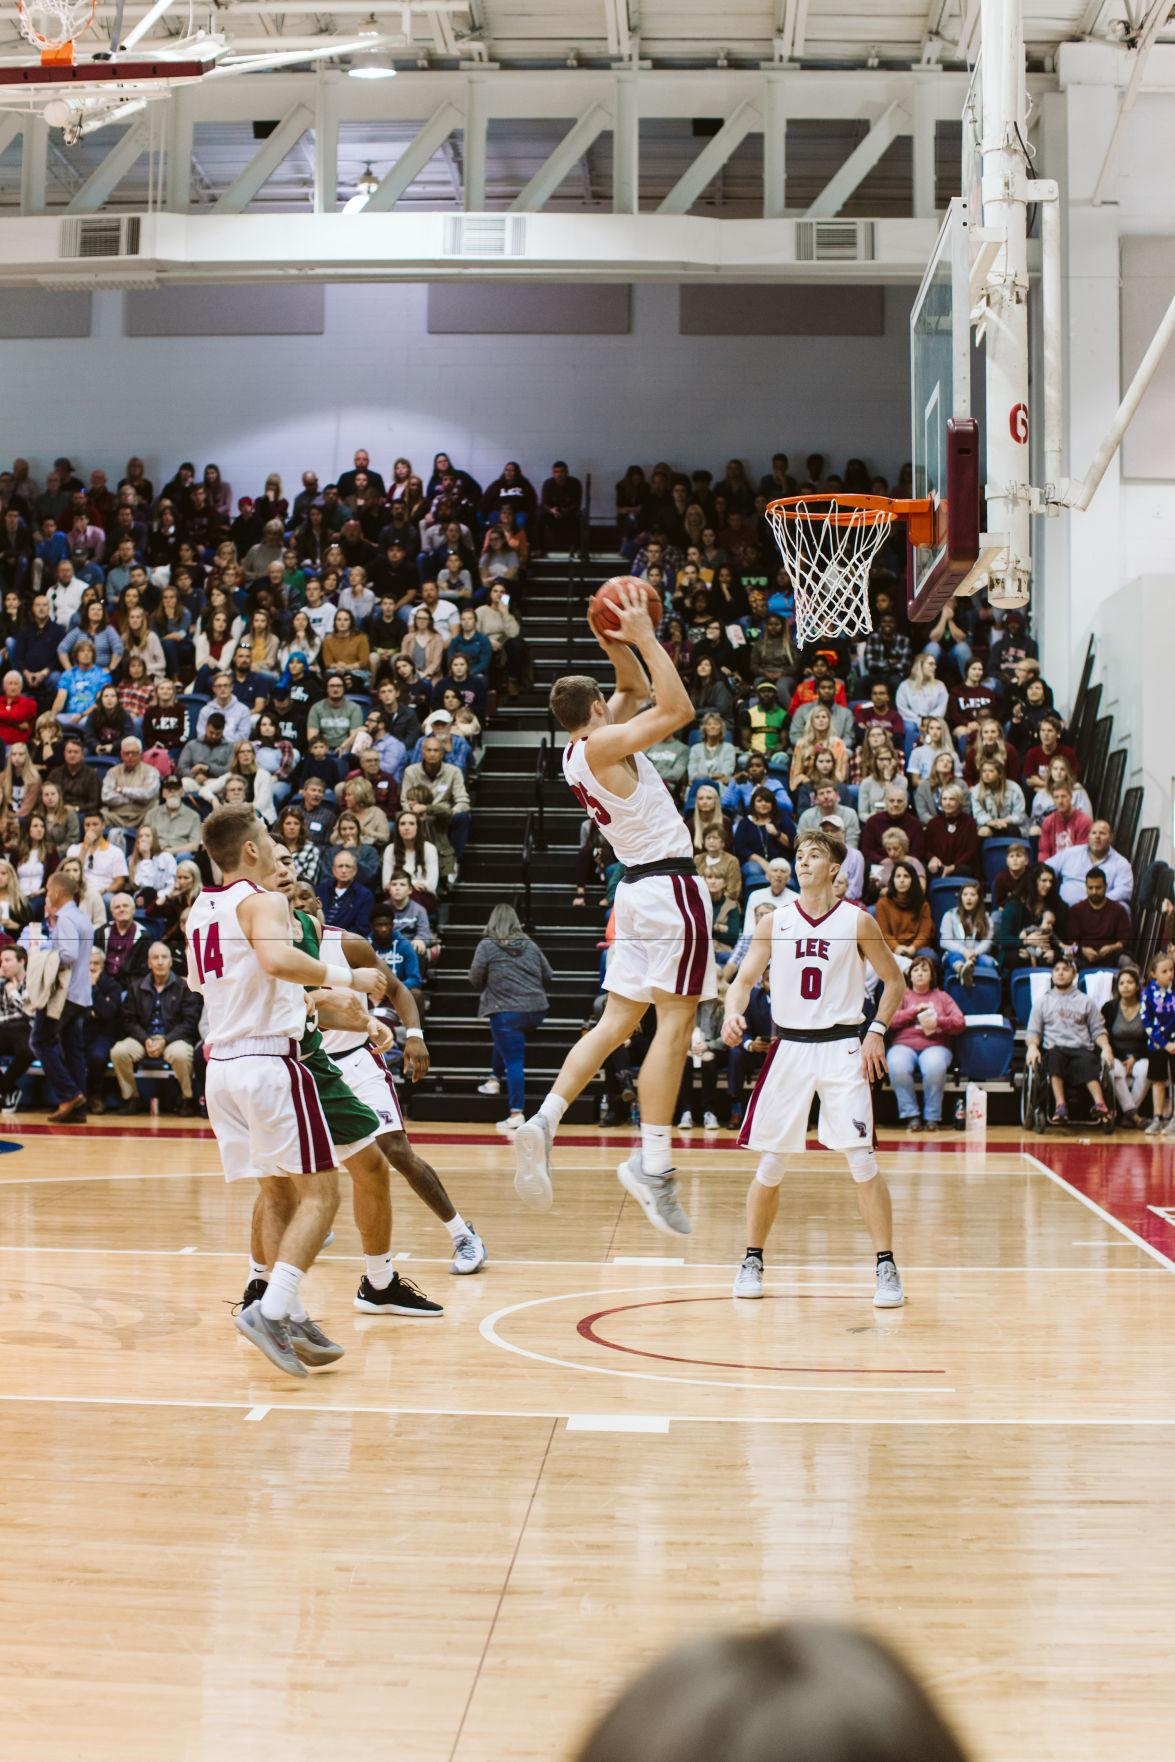 Michael McGuirk comes down with the defensive rebound against Piedmont College on Homecoming weekend.  Courtesy of Tessa Voccola, Media Services